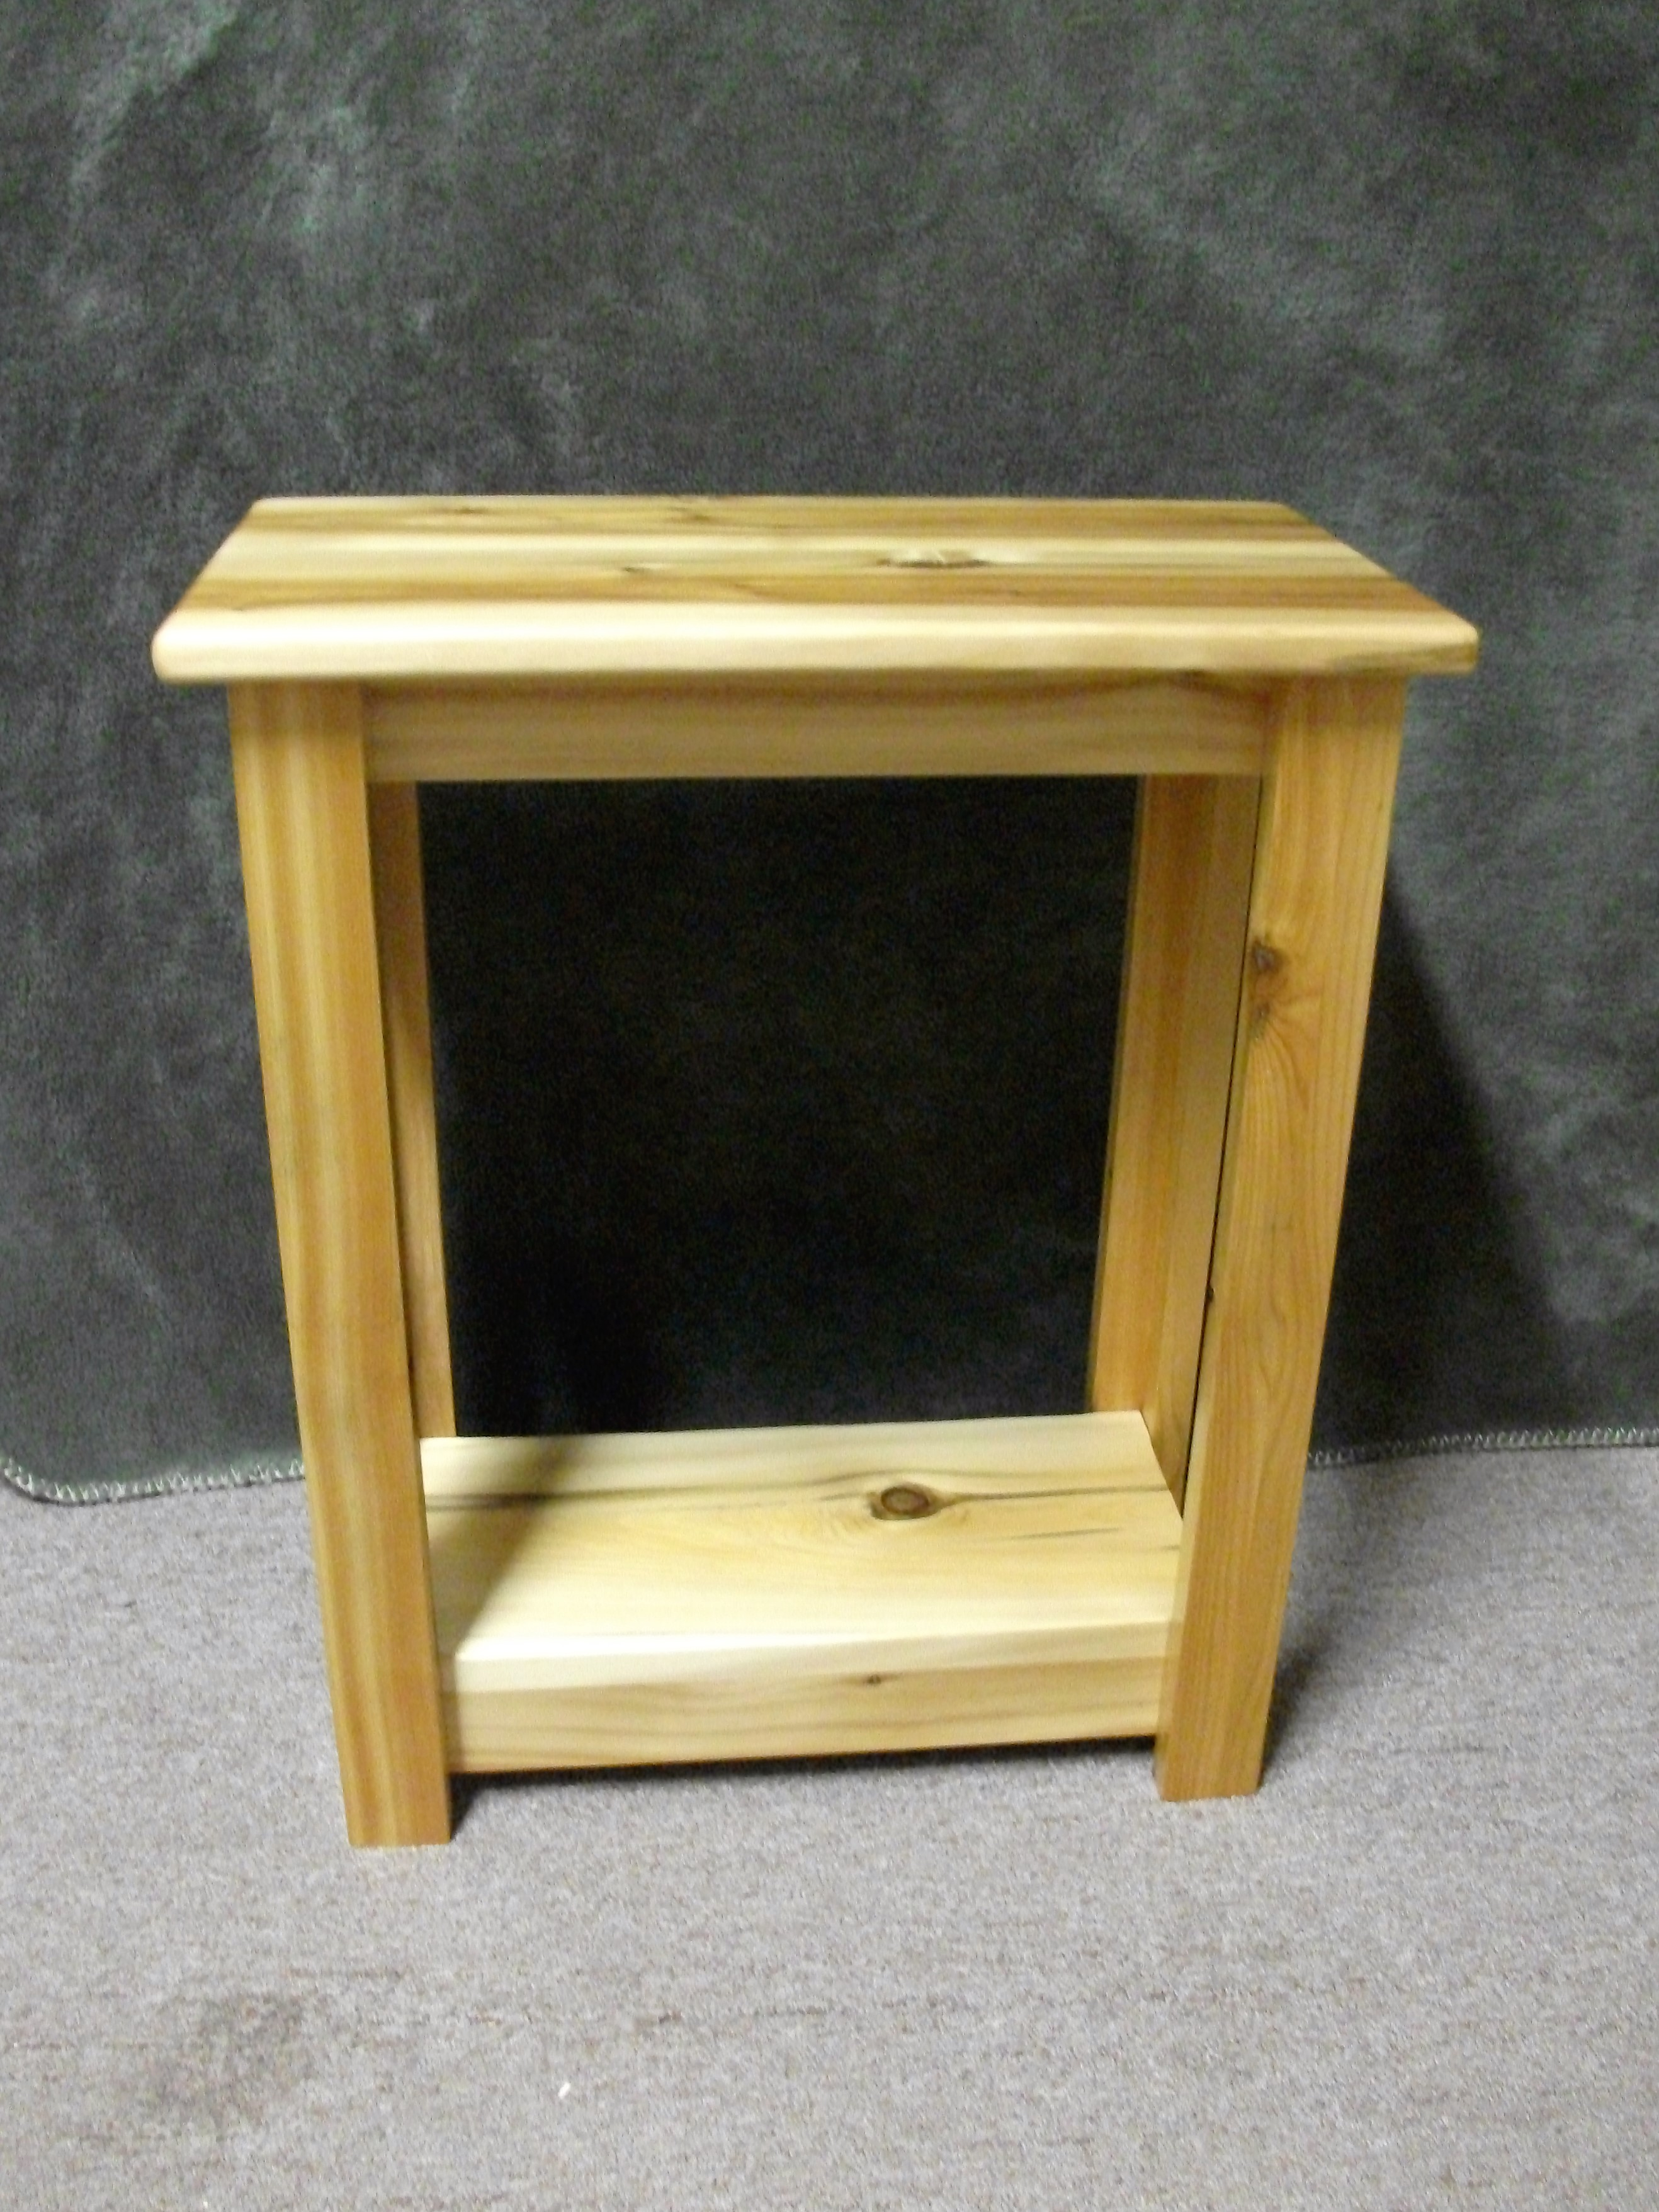 fold away desk the super real rustic cedar end tables white accent table northwoods accents inside dog kennels square lamp makeover ideas antique farm cabinet restoration